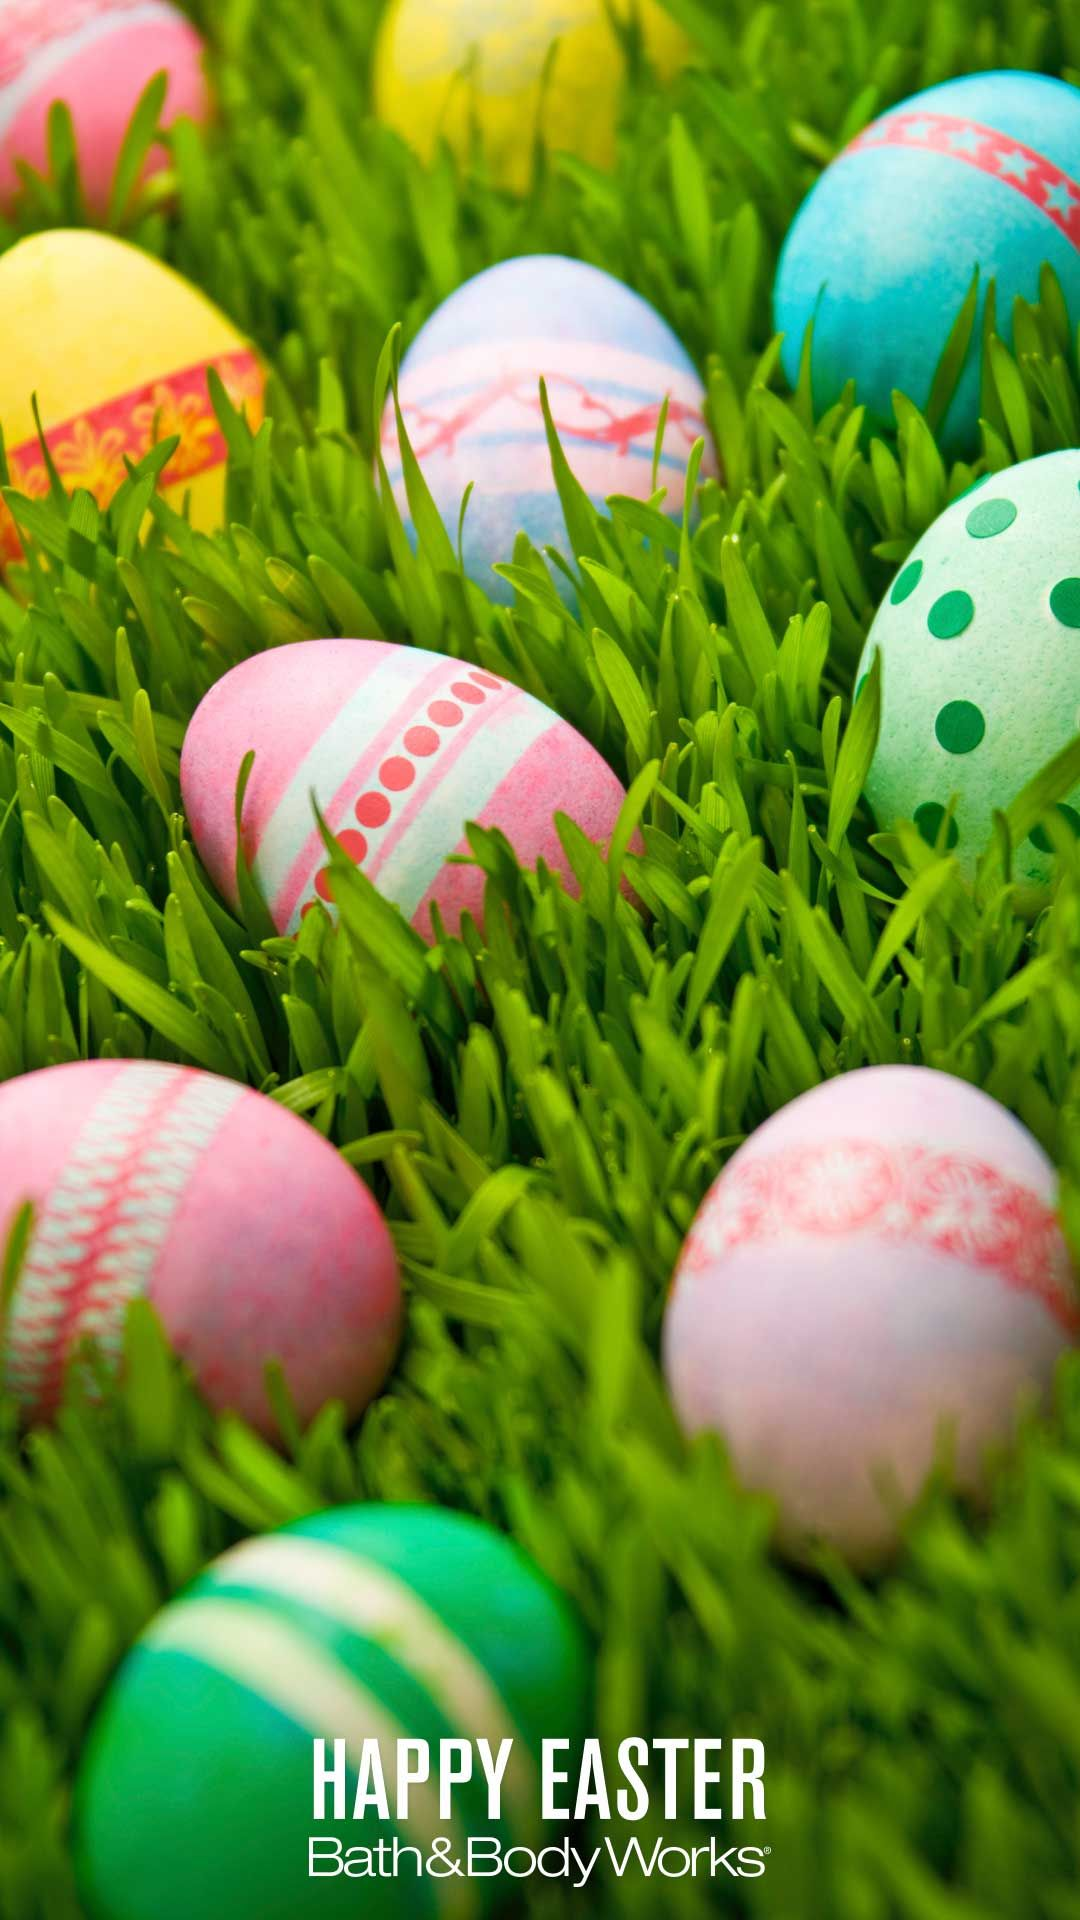 Easter Egg Hunt iPhone Wallpaper Bath Body Works Wallpapers 1080x1920